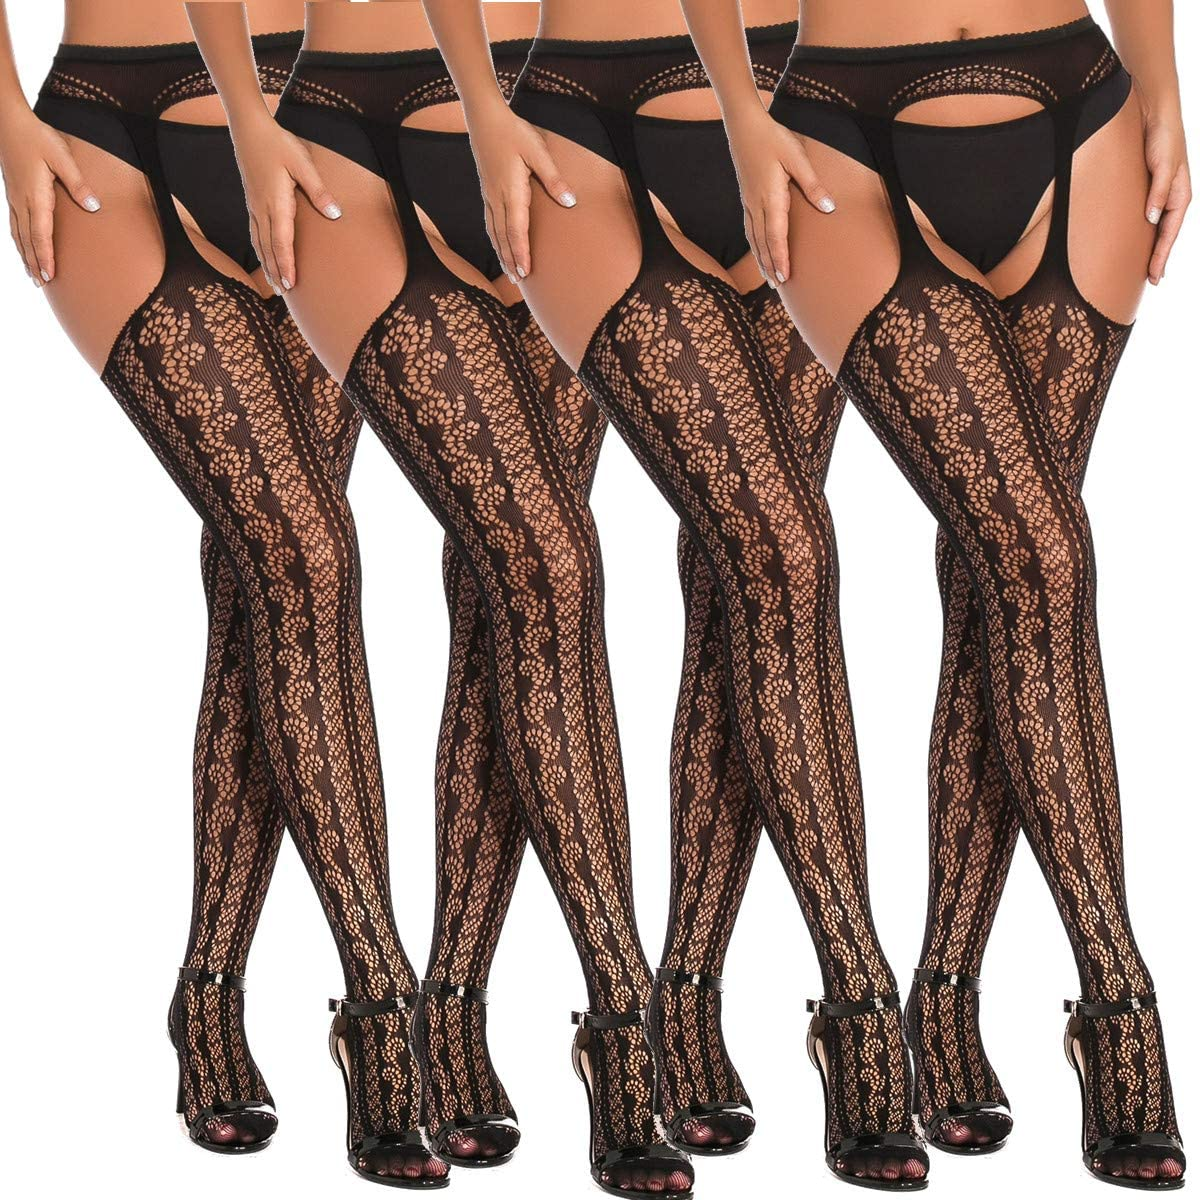 MengPa Fishnet Tights Suspender Stockings Thigh-High Pantyhose Black (J2449-55x4)